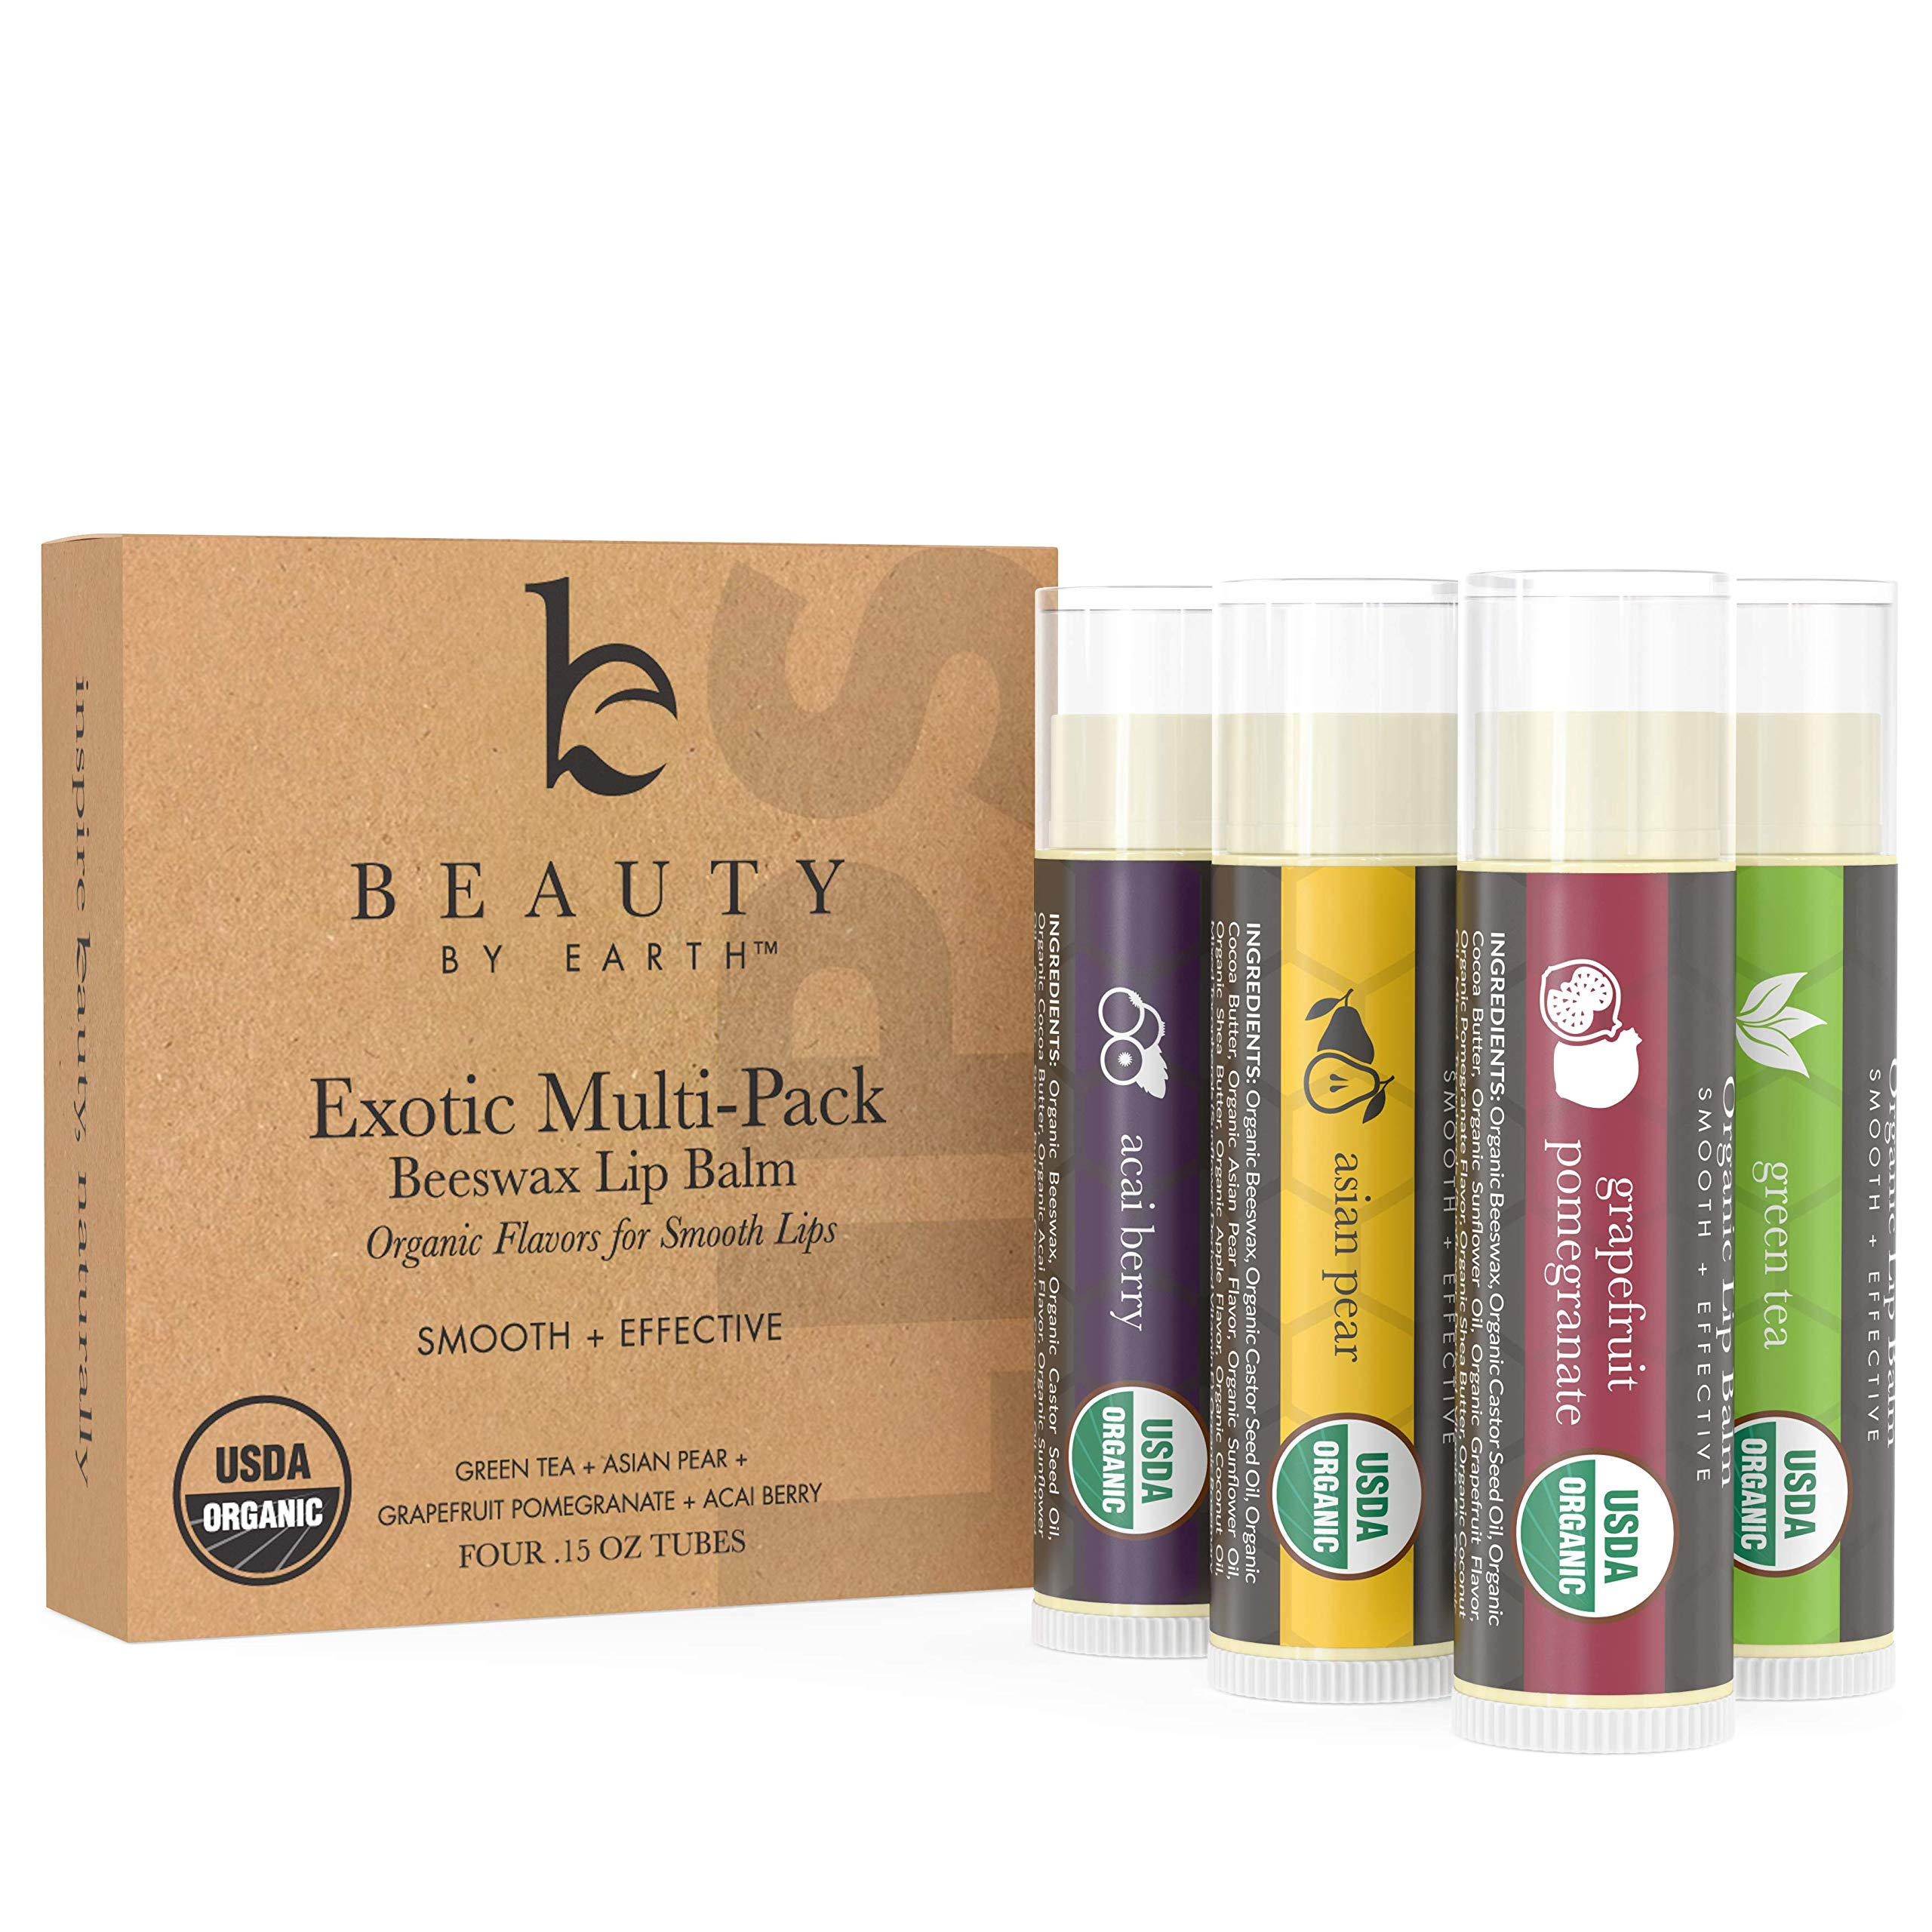 Organic Lip Balm Flavor Pack - 4 Tubes of Natural Lip Balm, Lip Moisturizer, Lip Treatment for Dry Lips, Lip Care Gifts for Women or Men, Lip Repair, Organic Chapstick for Soft Lips, Stocking Stuffers